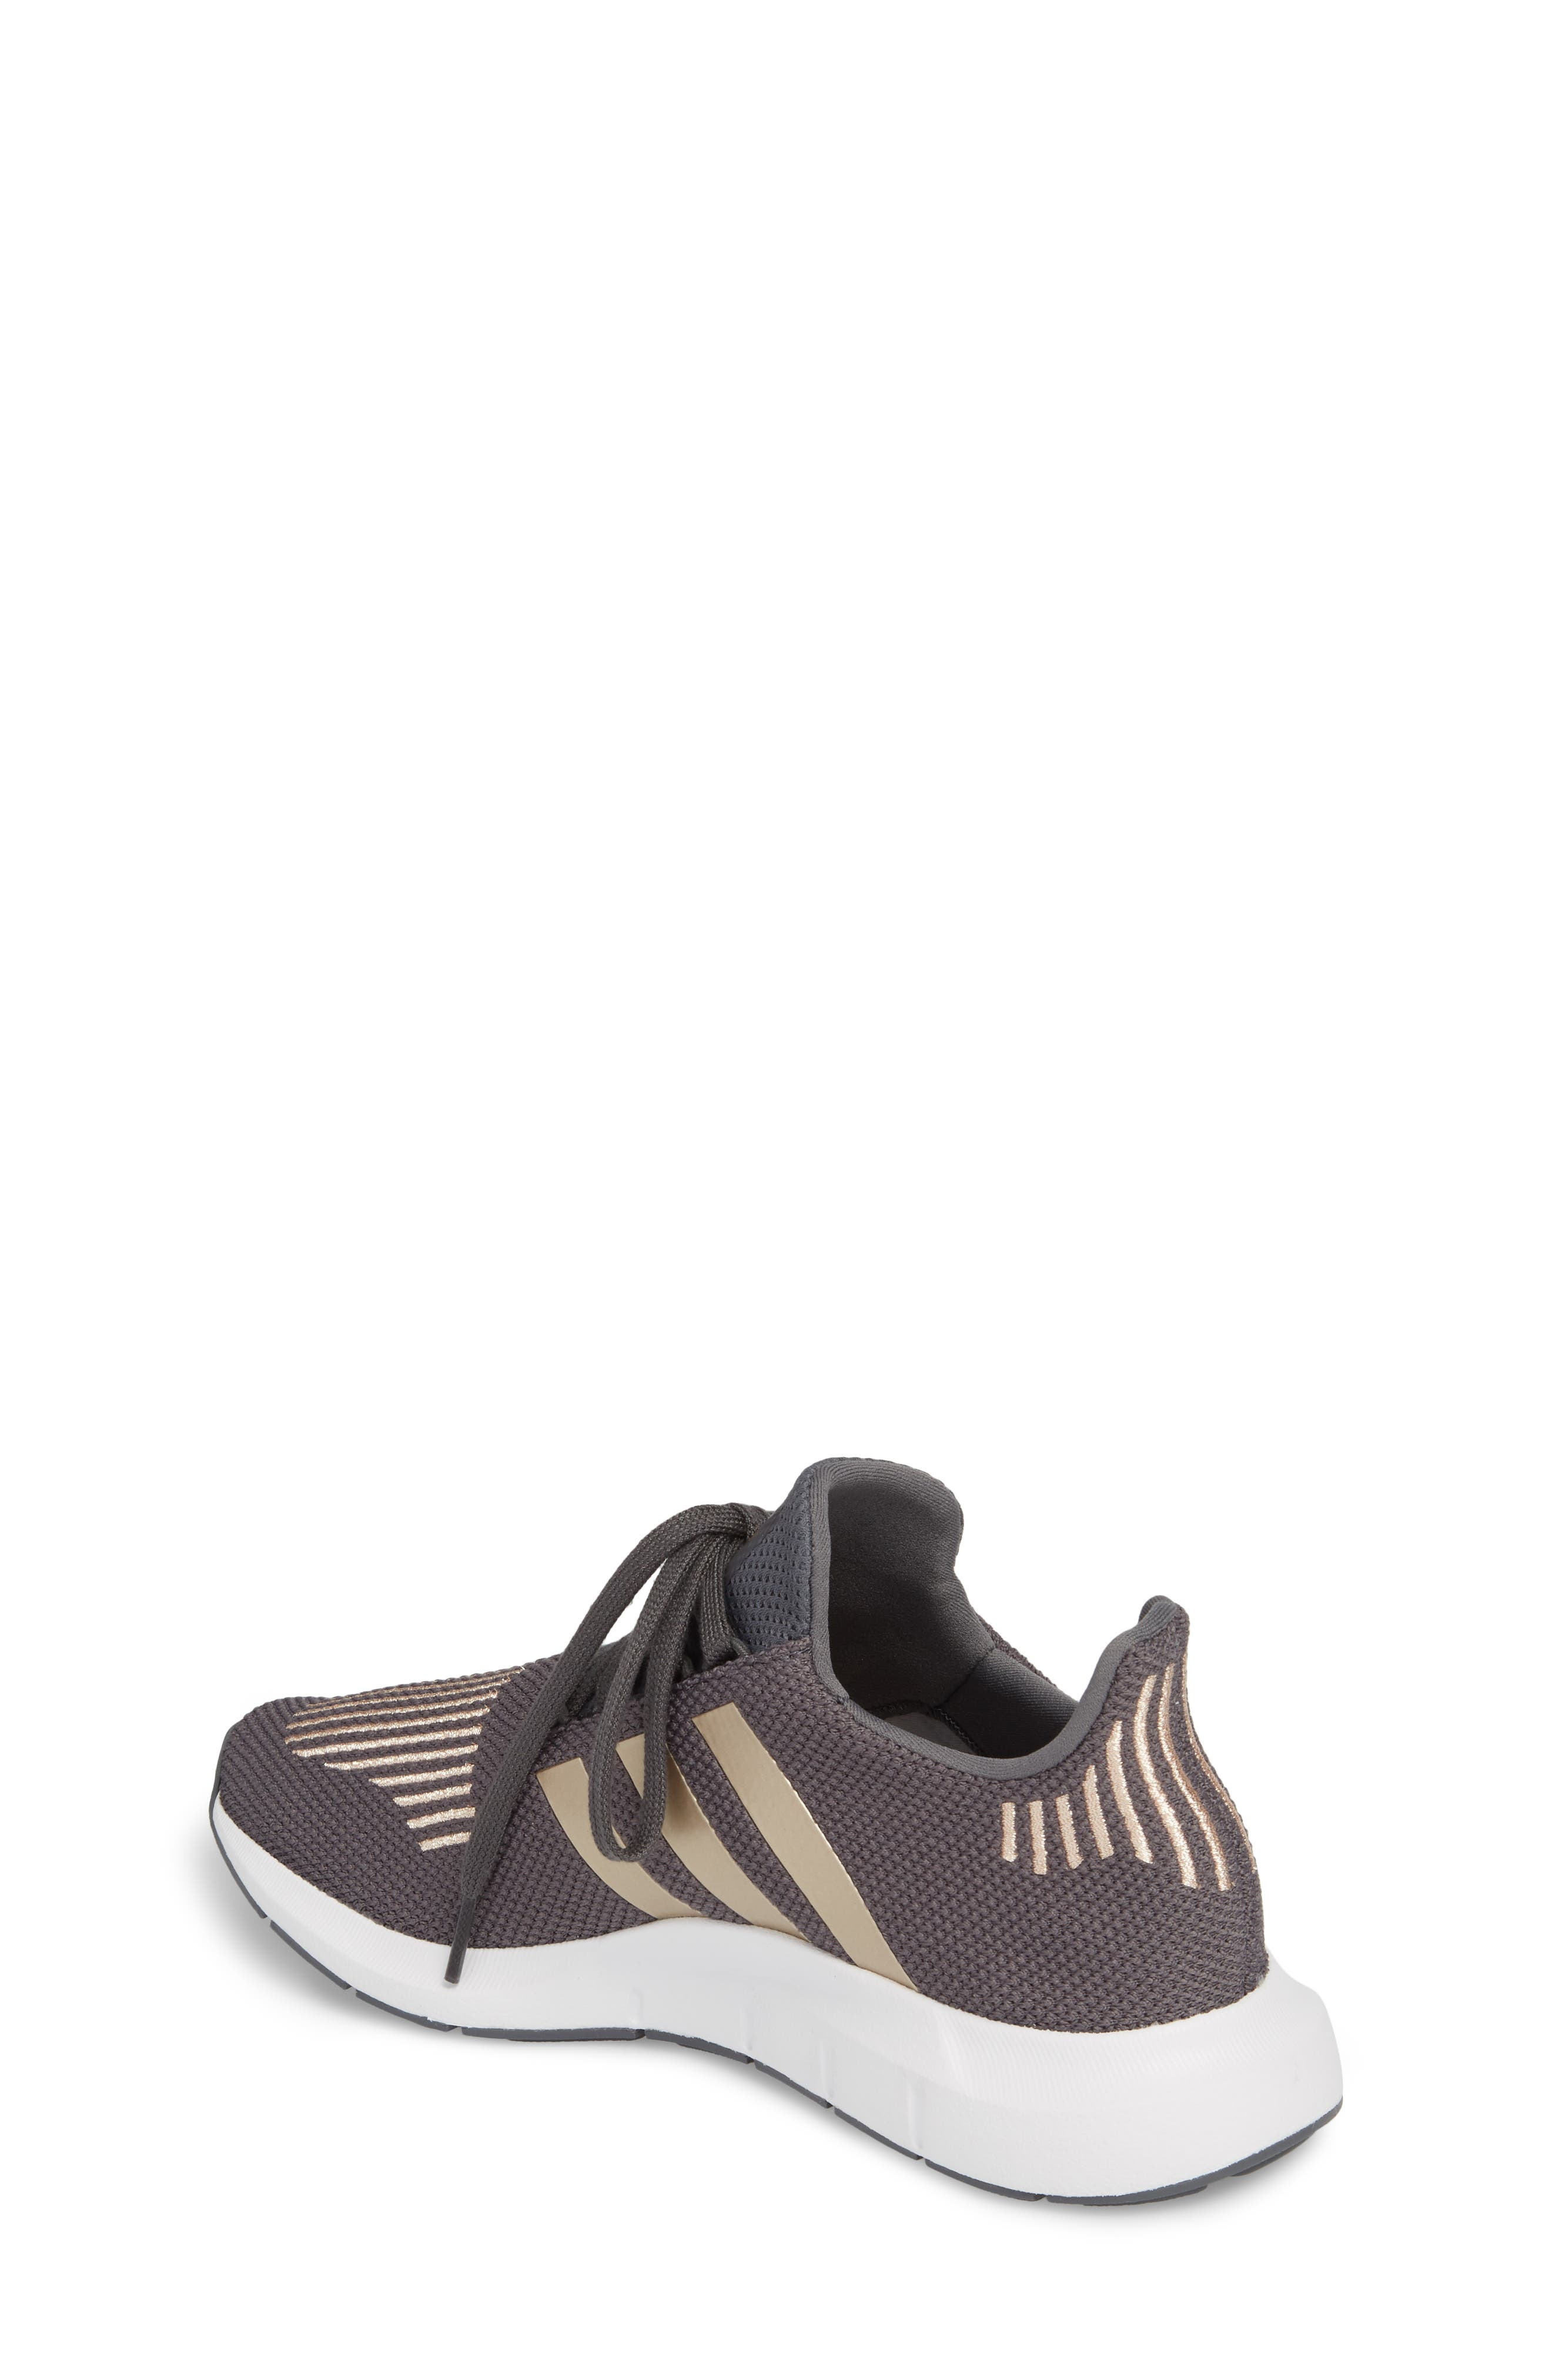 Swift Run Sneaker,                             Alternate thumbnail 2, color,                             Grey / Copper / White